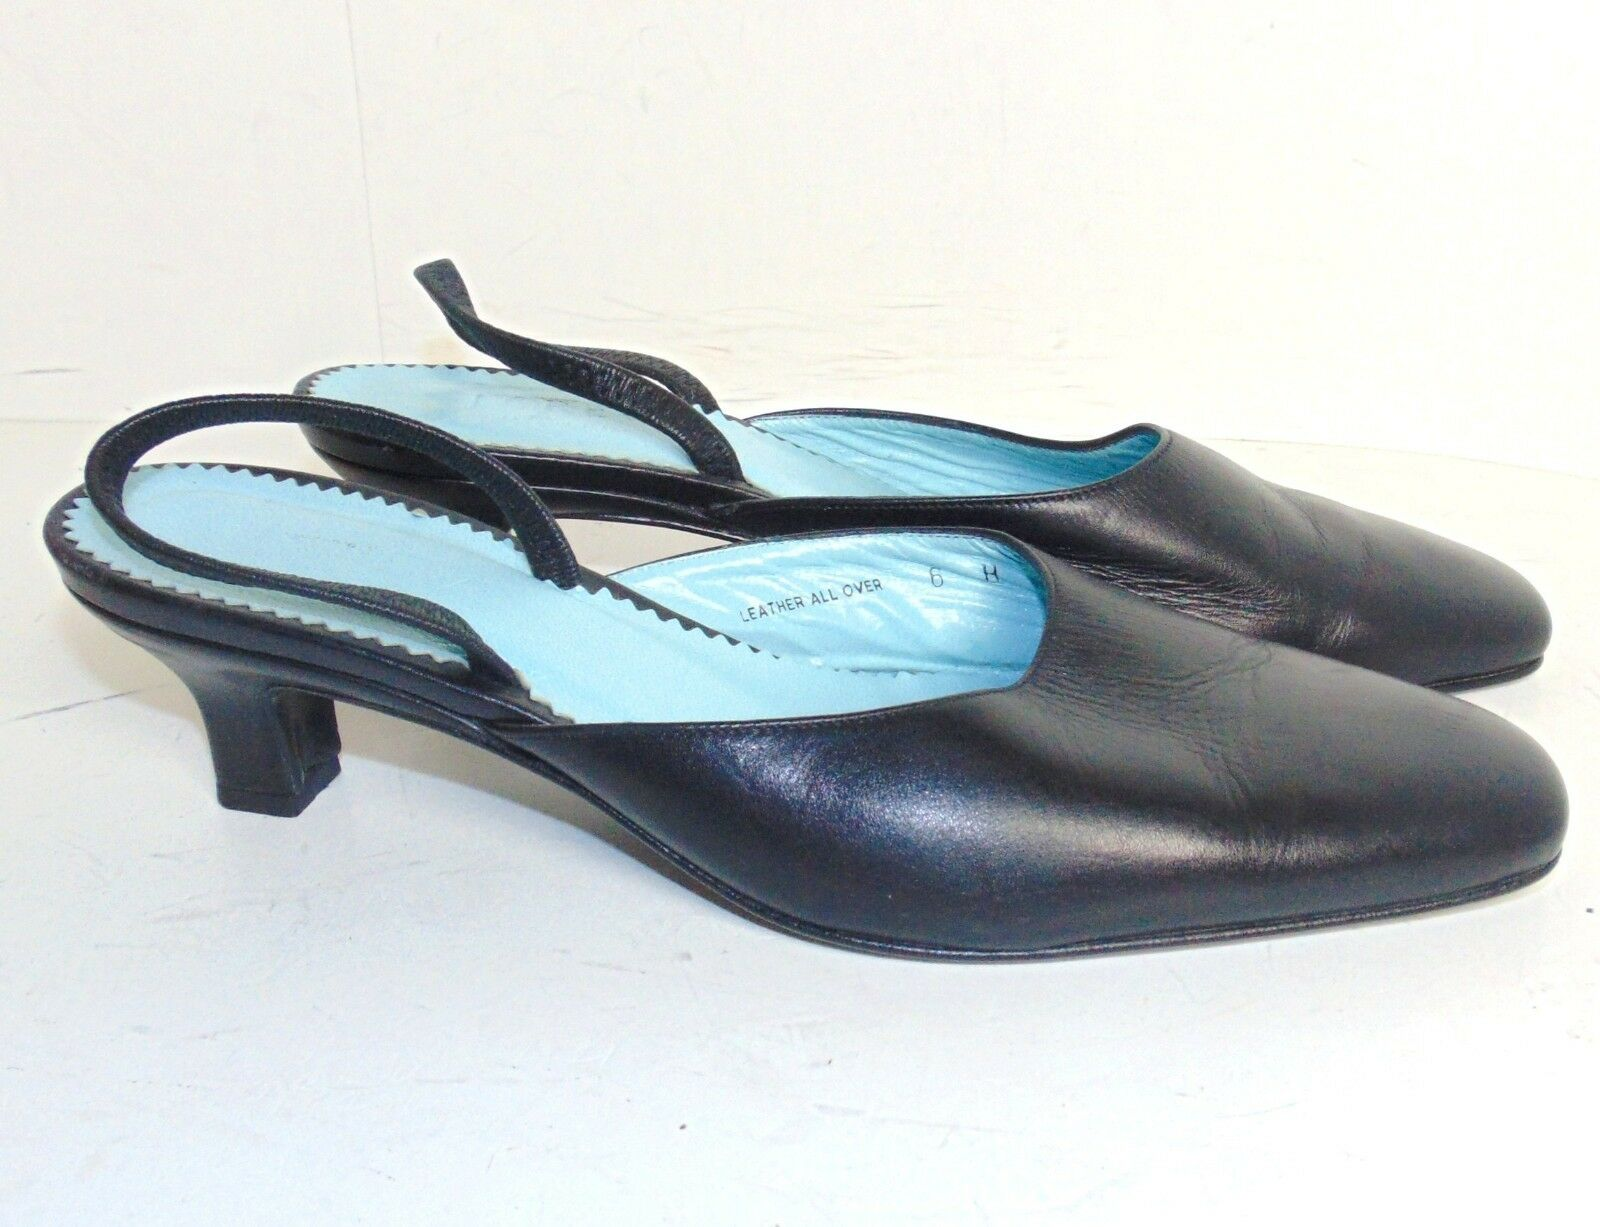 J.CREW 6.5 B $245 BLACK LEATHER SLINGBACK PUMPS $245 B 510a15